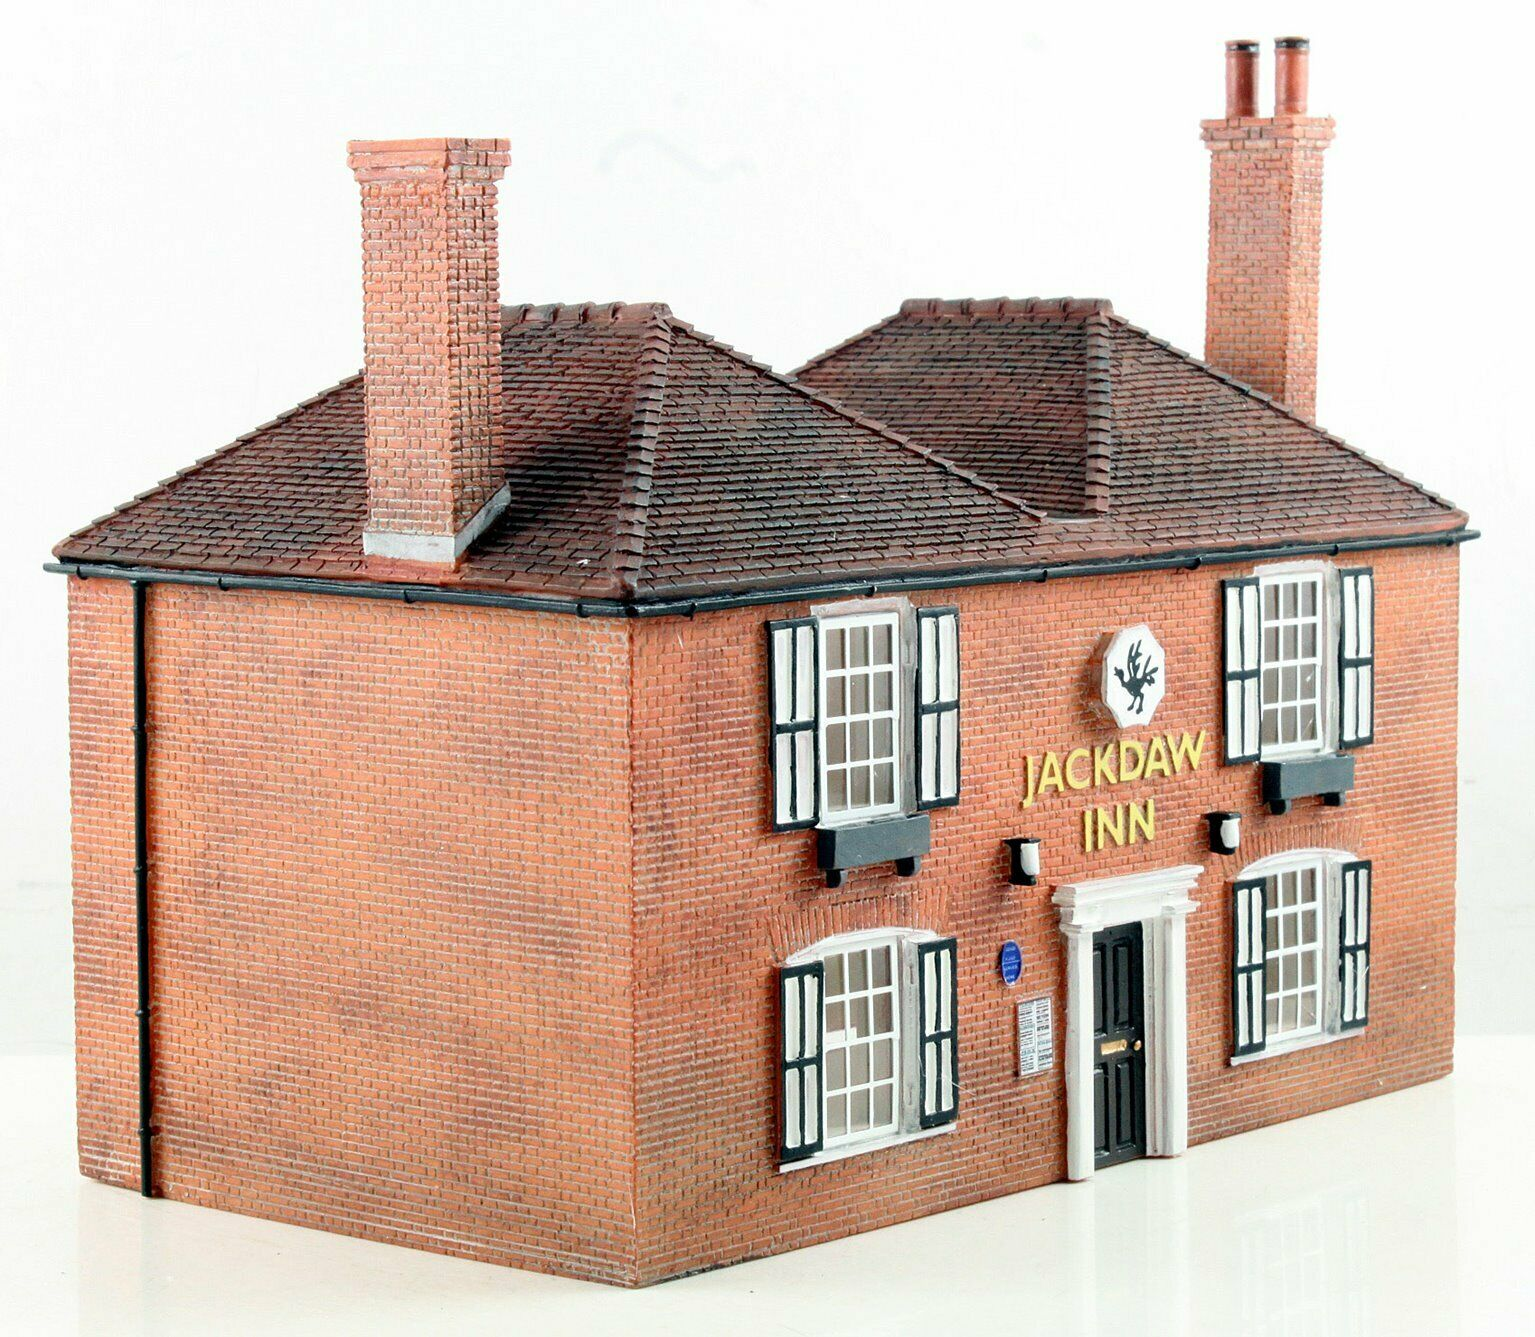 Bachmann 00 Scenecraft - The Jackdaw Inn - Pub 44-0020